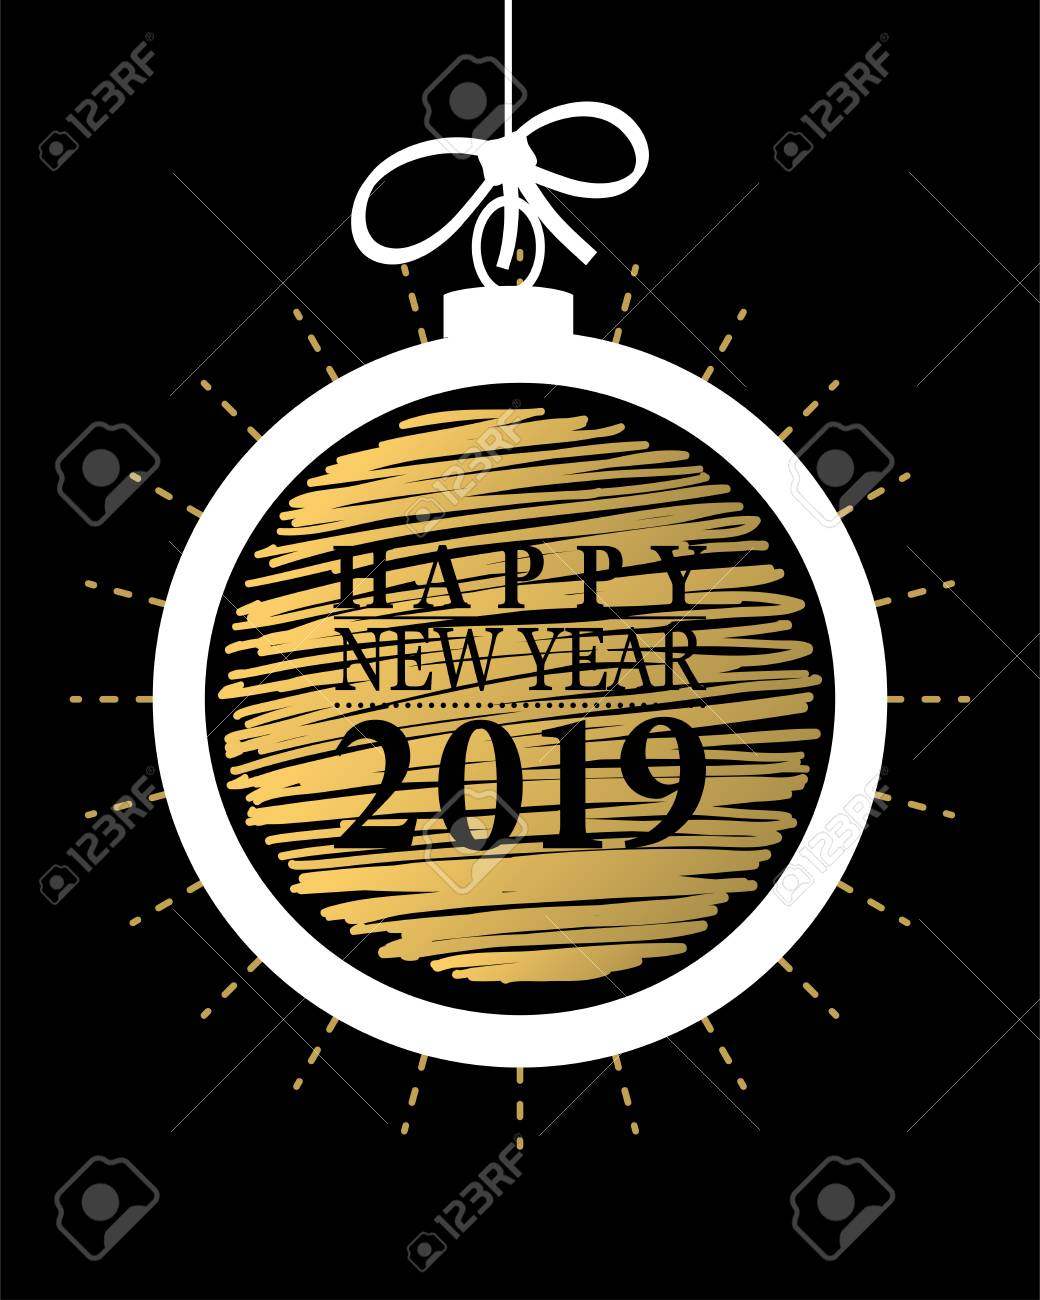 2019 happy new year card or backgroundtrendy style with hand lettering words